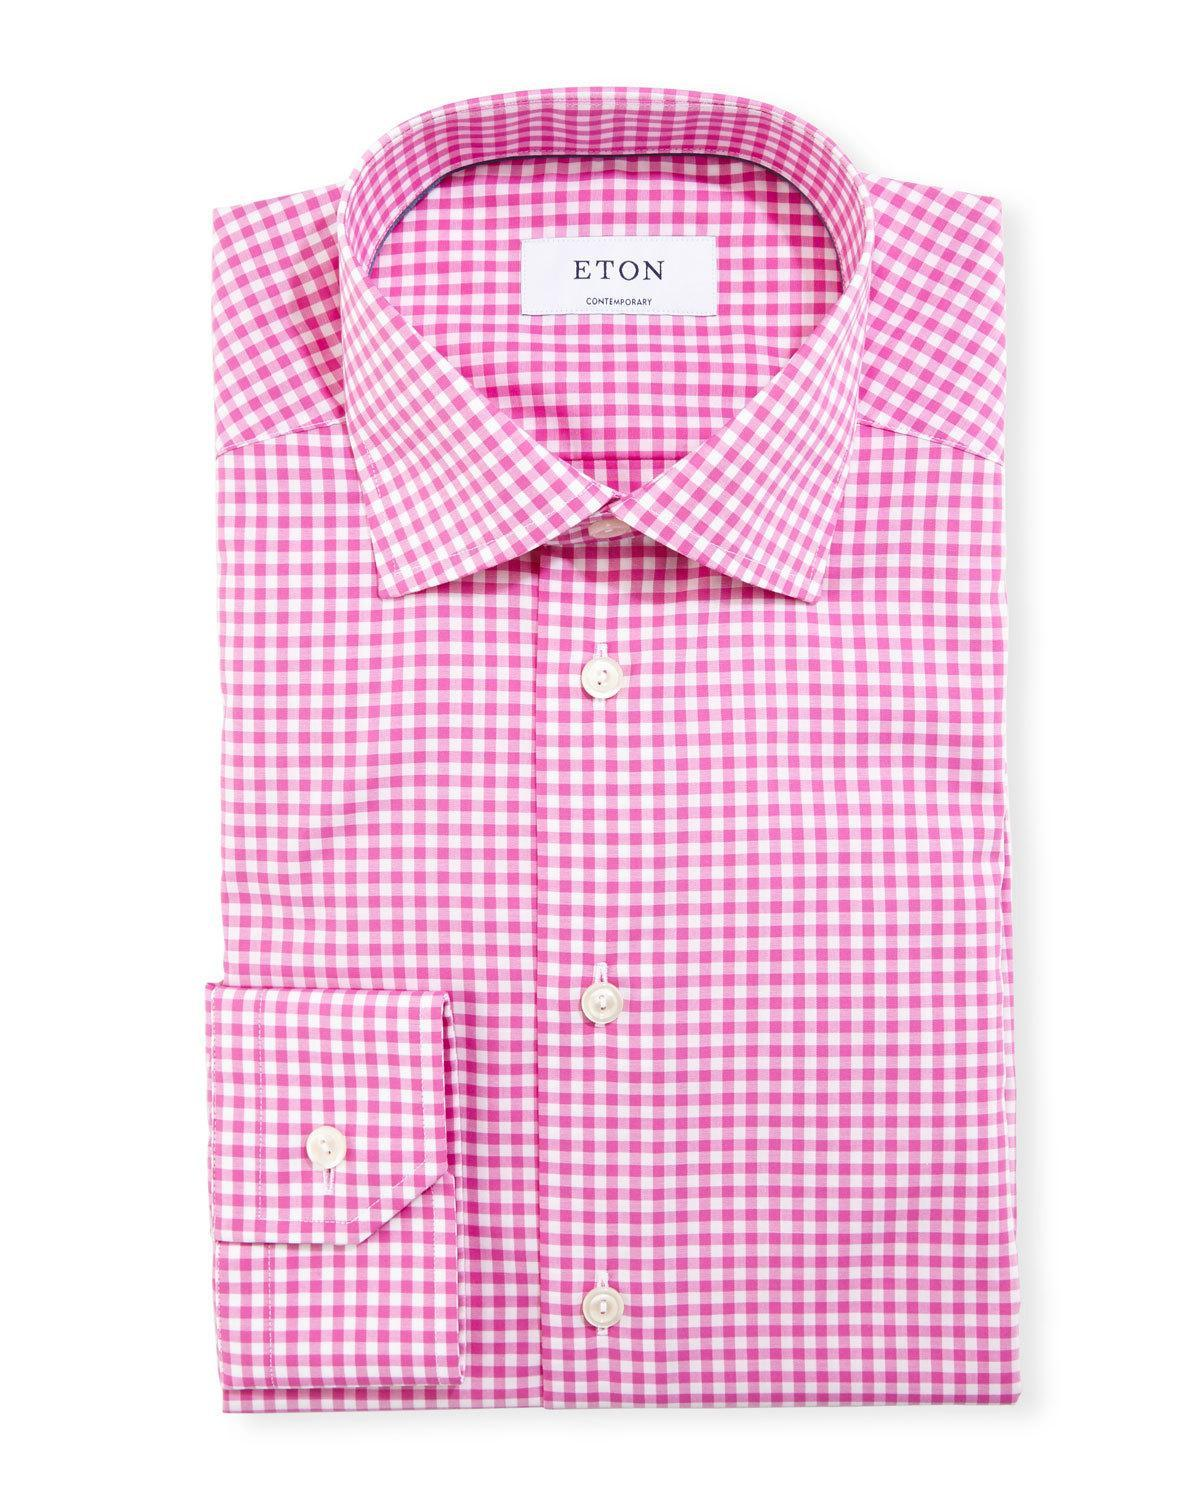 Eton of sweden contemporary fit gingham dress shirt in red for Men s red gingham dress shirt